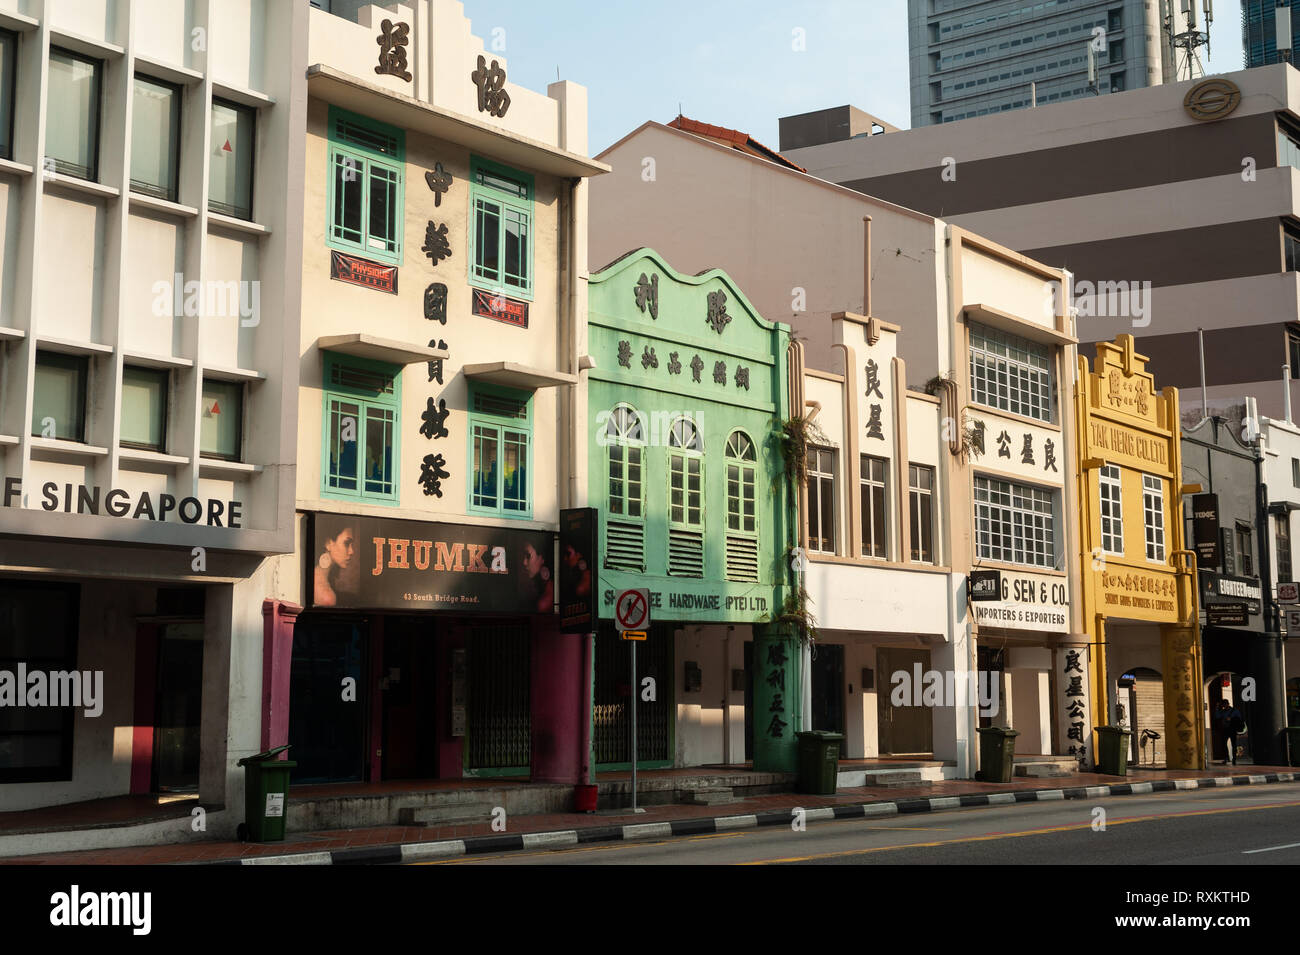 08.03.2019, Singapore, Republic of Singapore, Asia - A view of old buildings along South Bridge Road in the city centre. - Stock Image